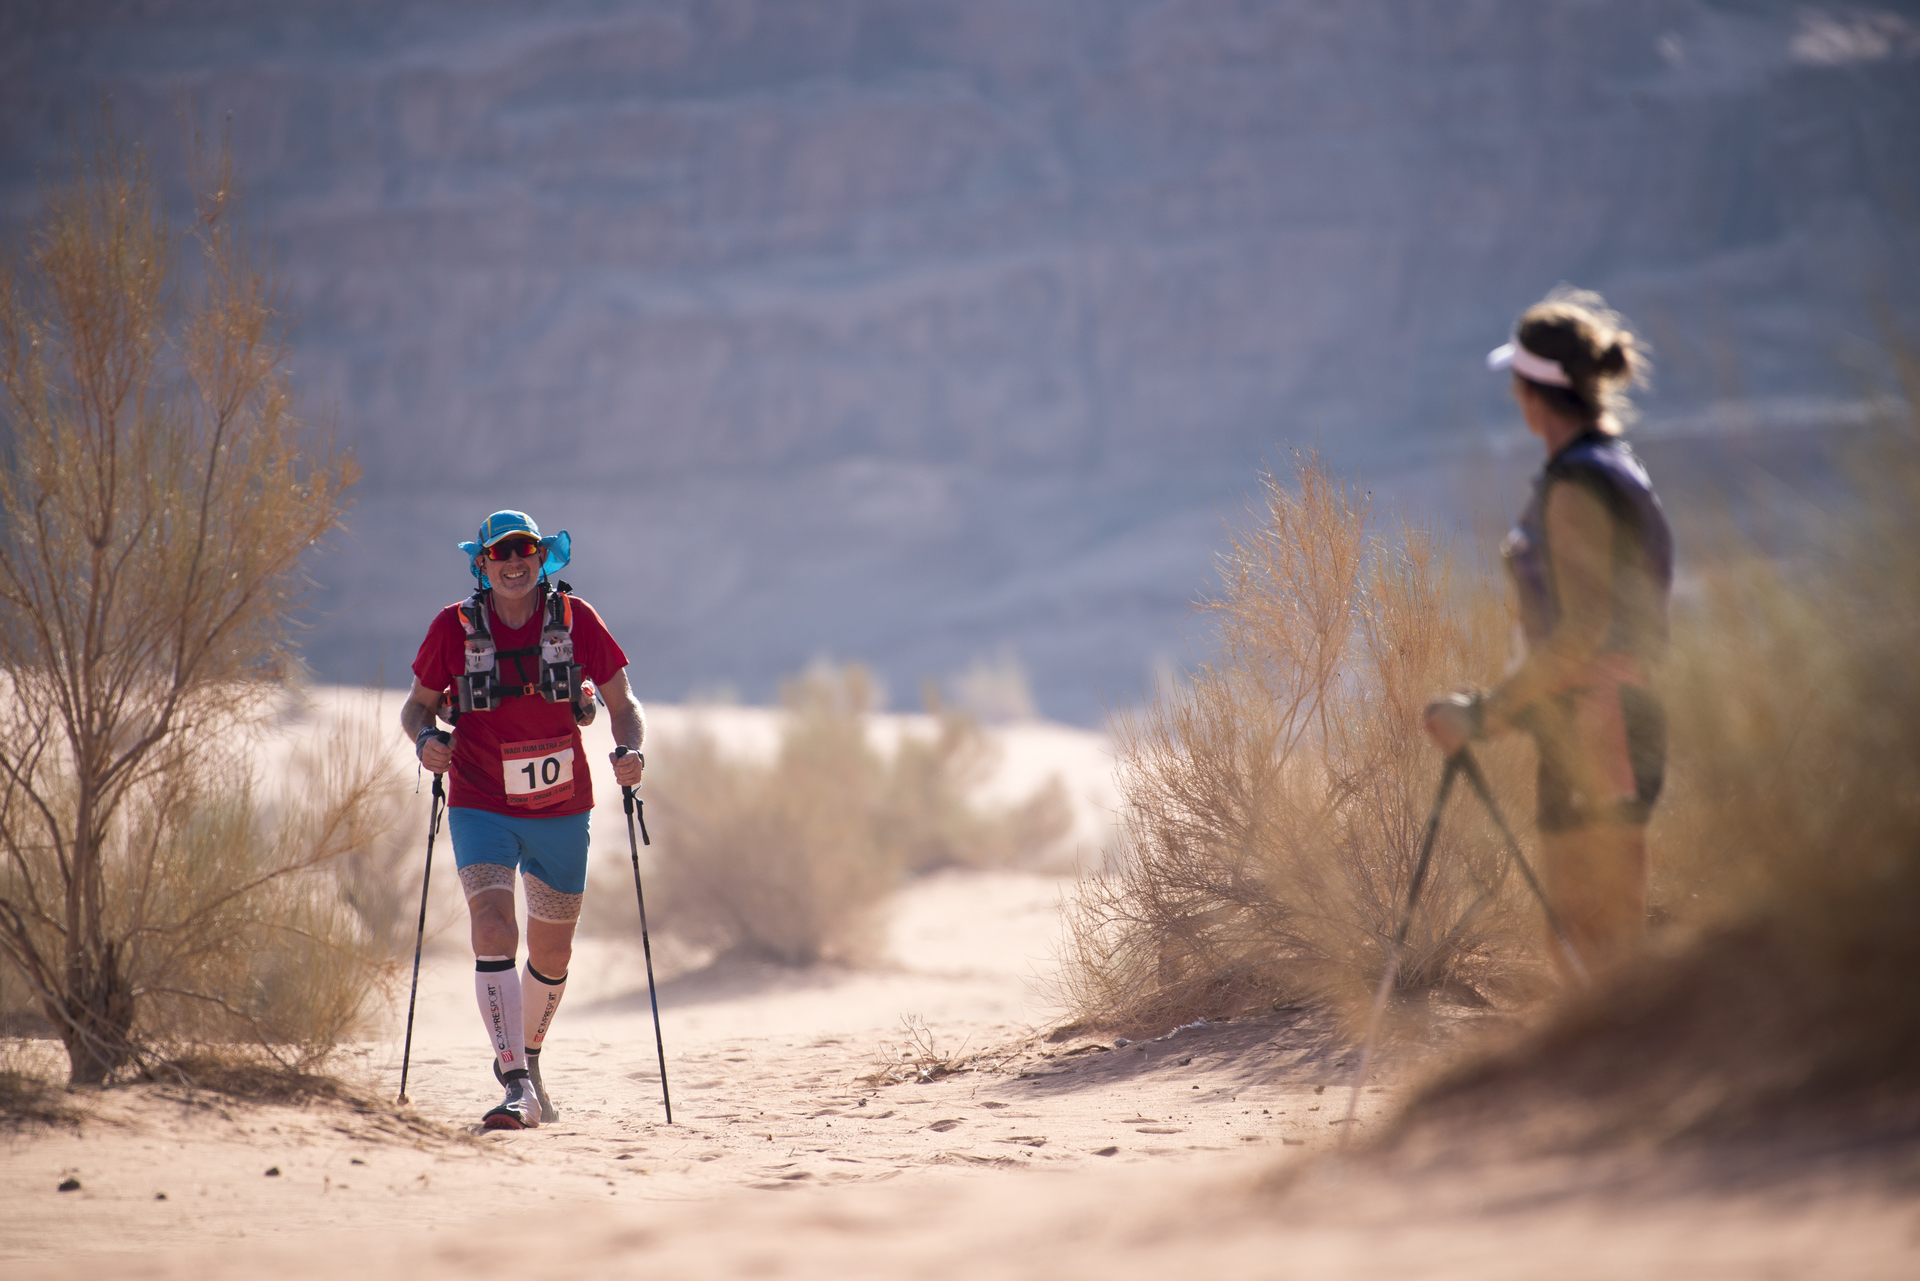 Registration is open for Ultra X Jordan (Wadi Rum Ultra)! Ultra X